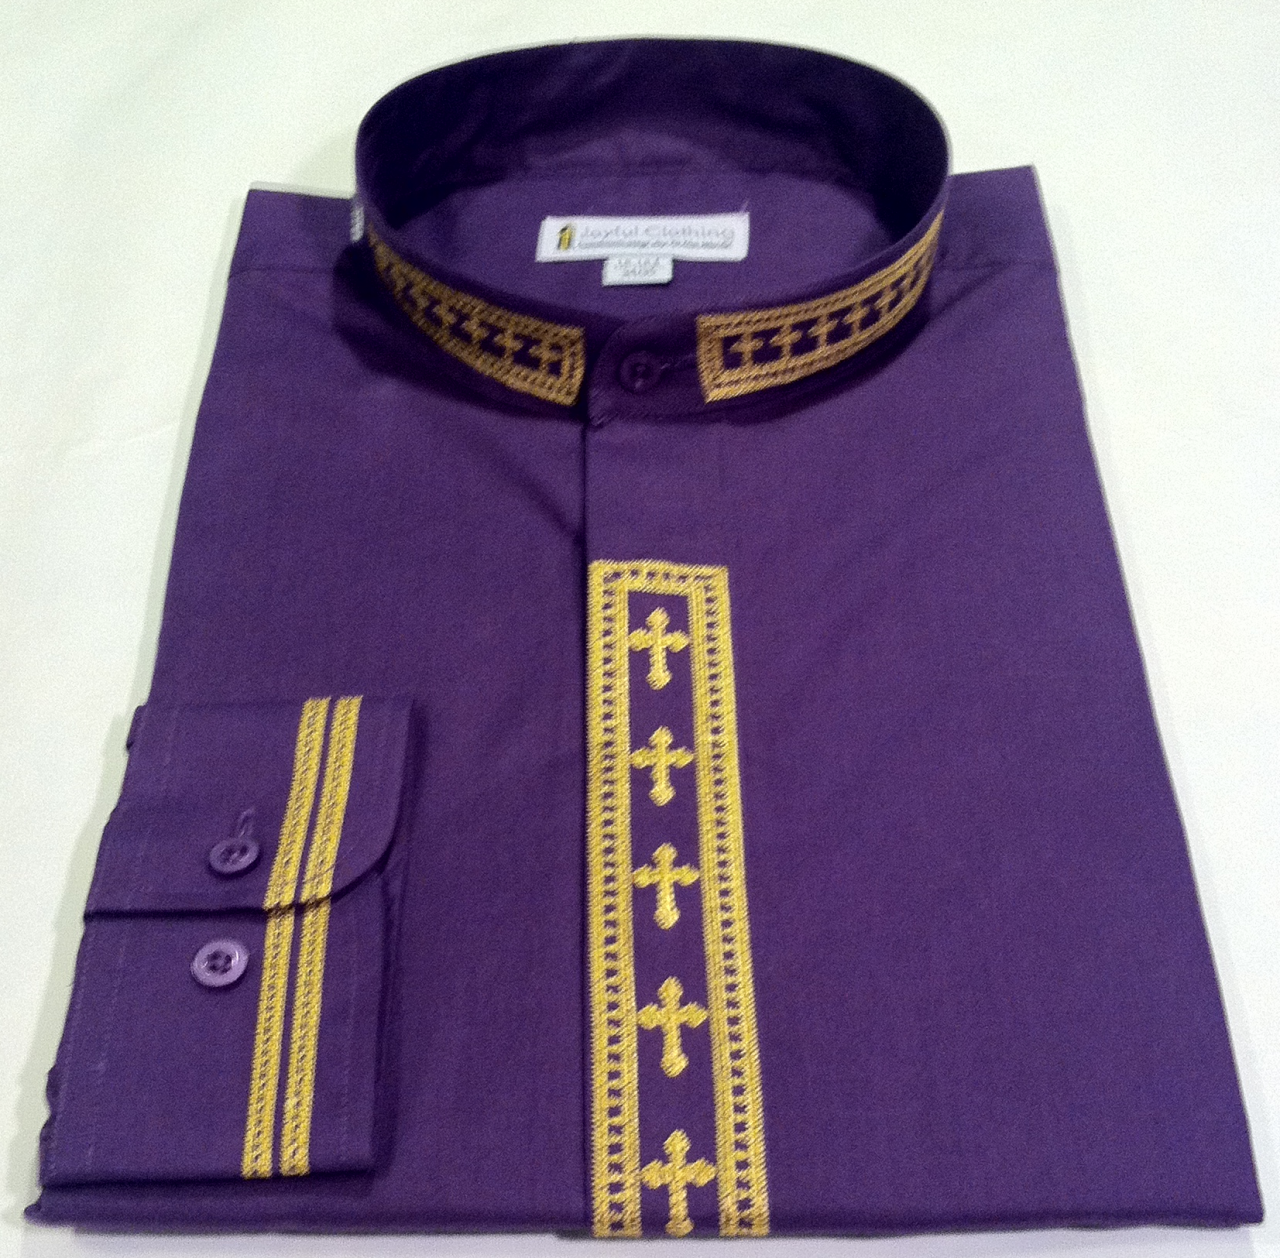 305. Men's Long-Sleeve Clergy Shirt With Fine Embroidery - Purple/Gold